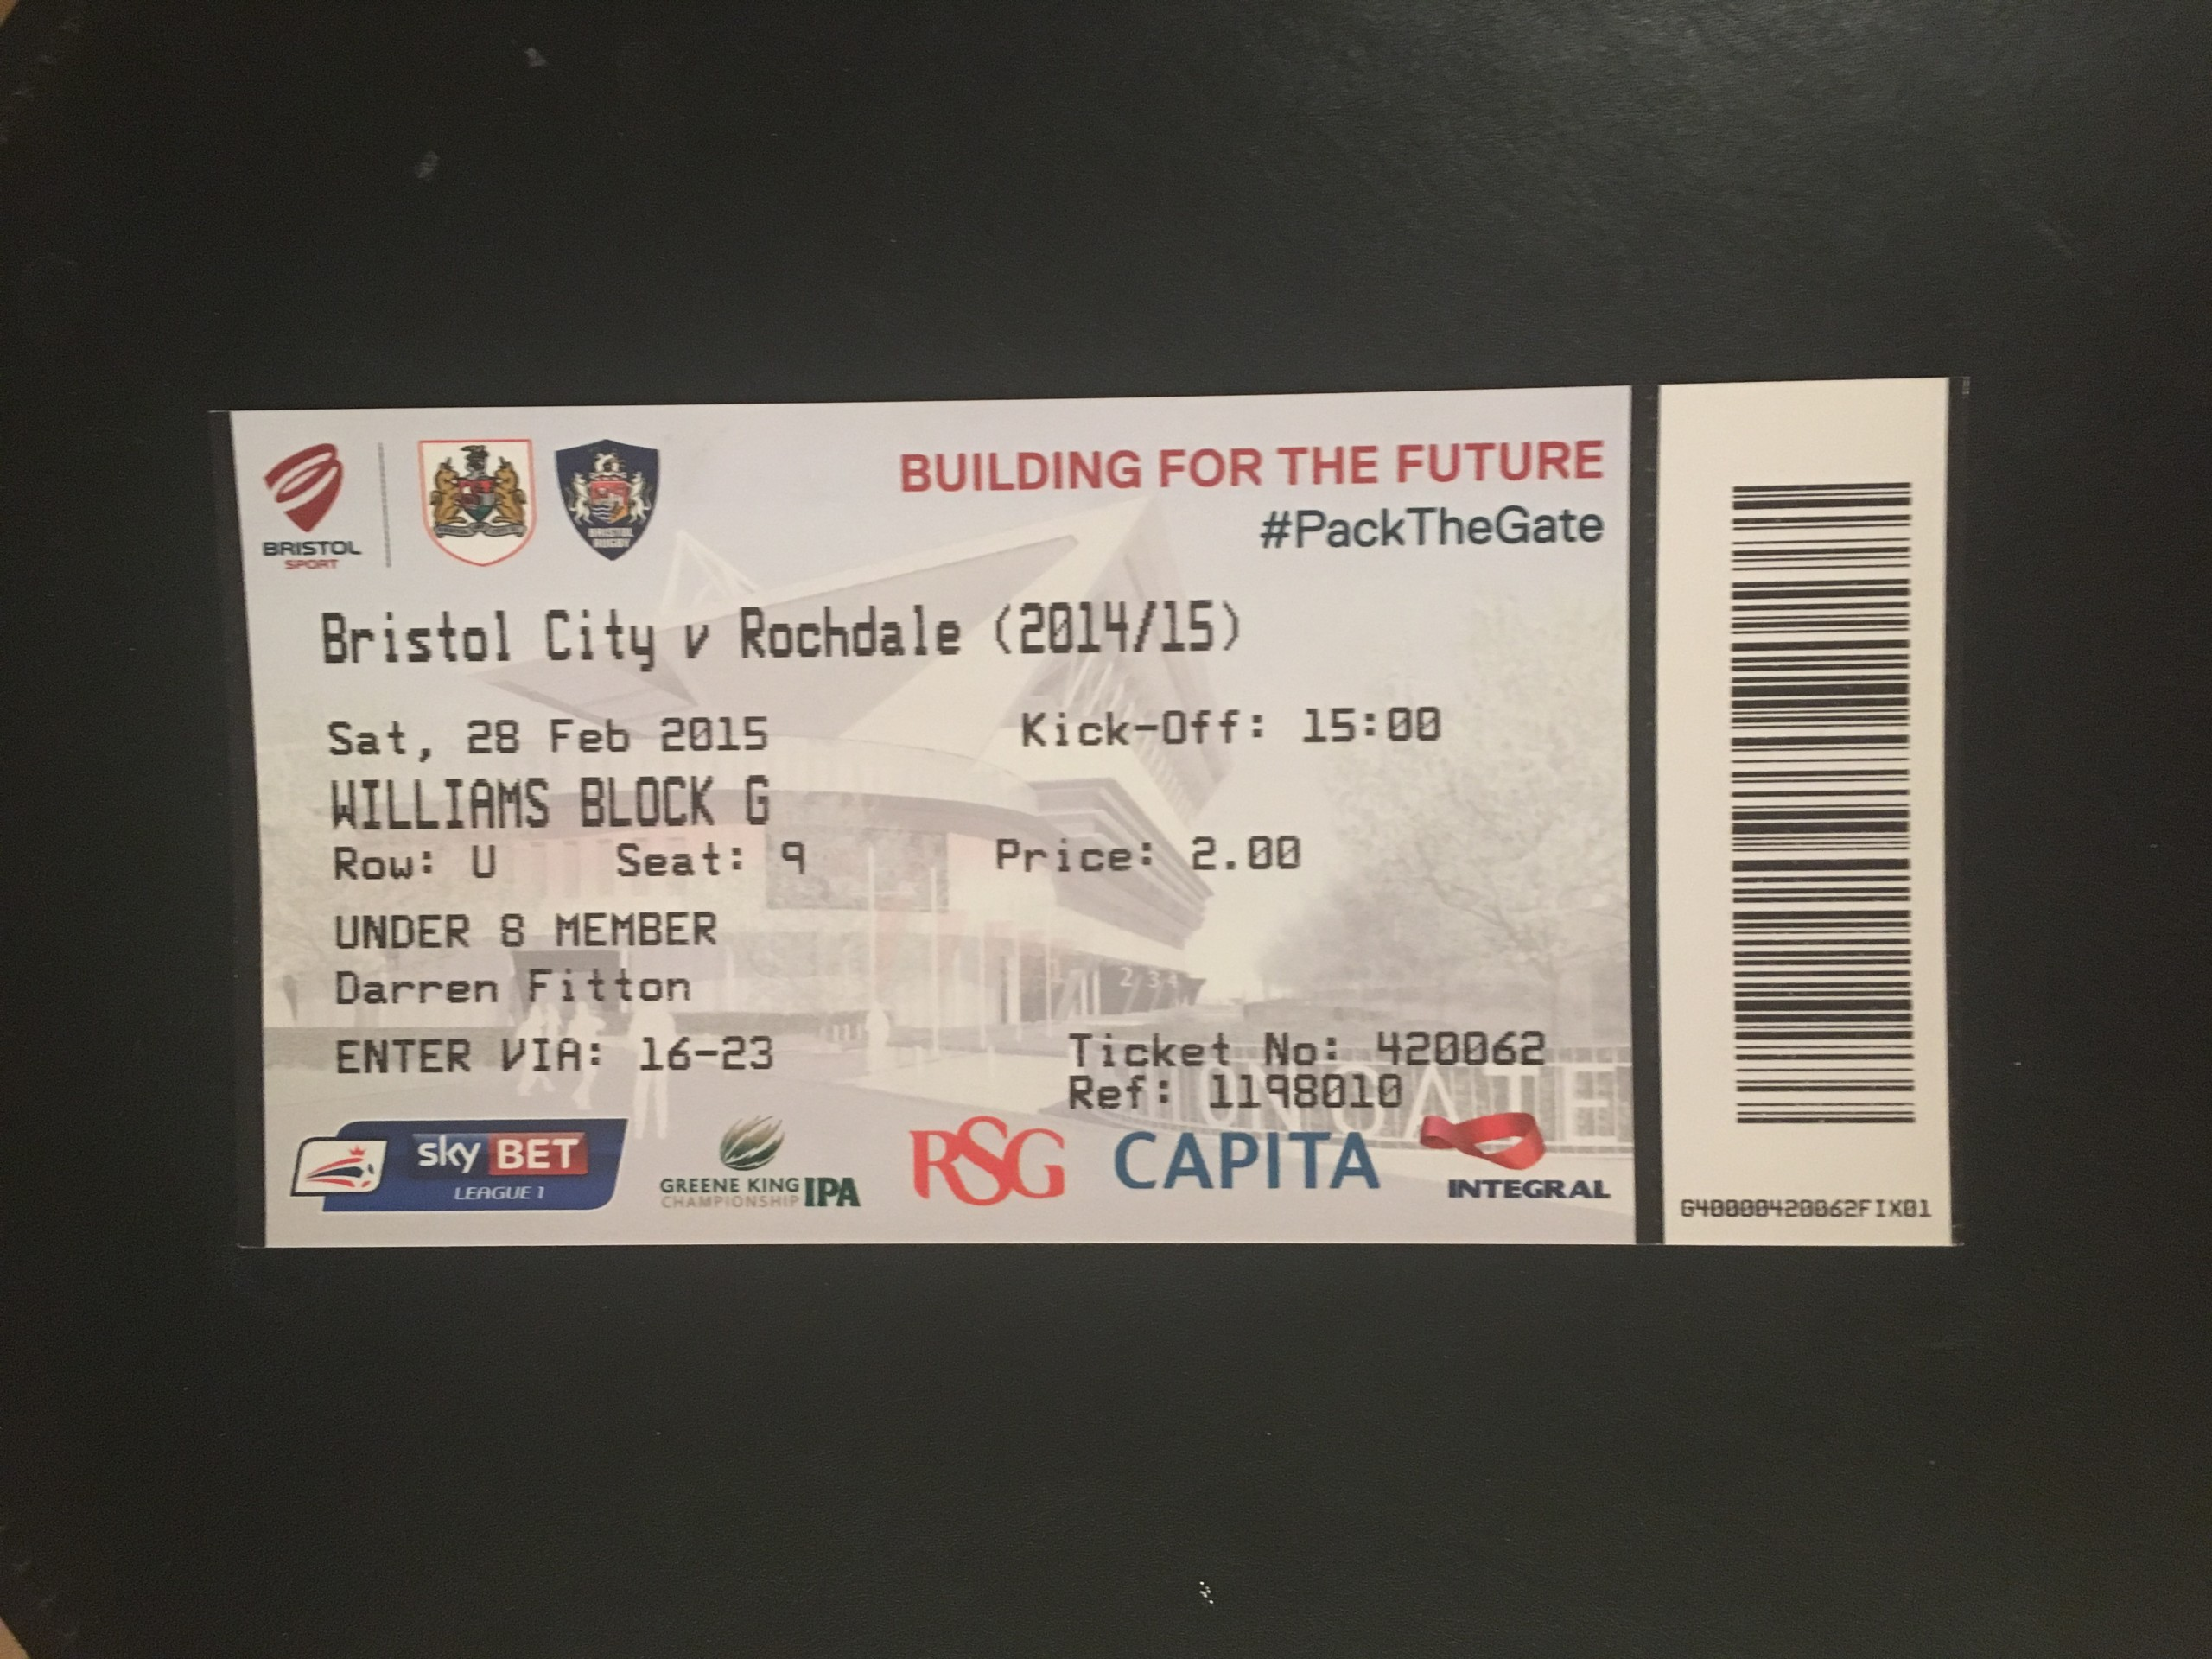 Bristol City v Rochdale 28-02-2015 Ticket